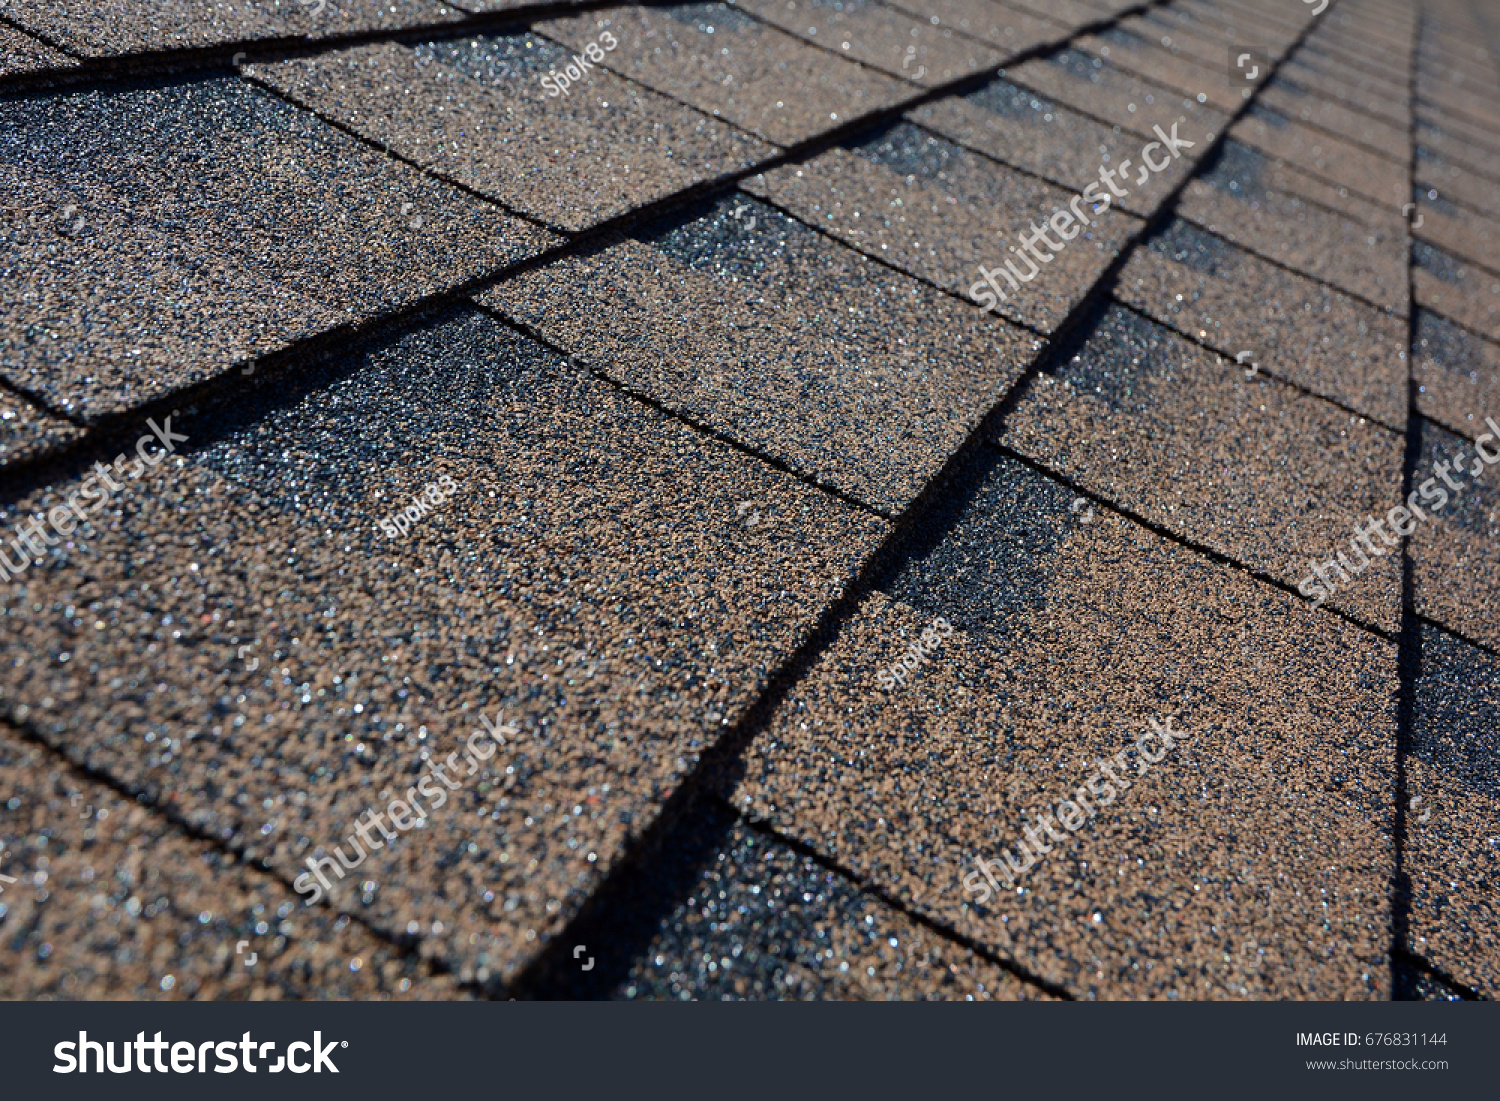 Close Up View On Asphalt Roofing Shingles Background. Roof Shingles    Roofing.